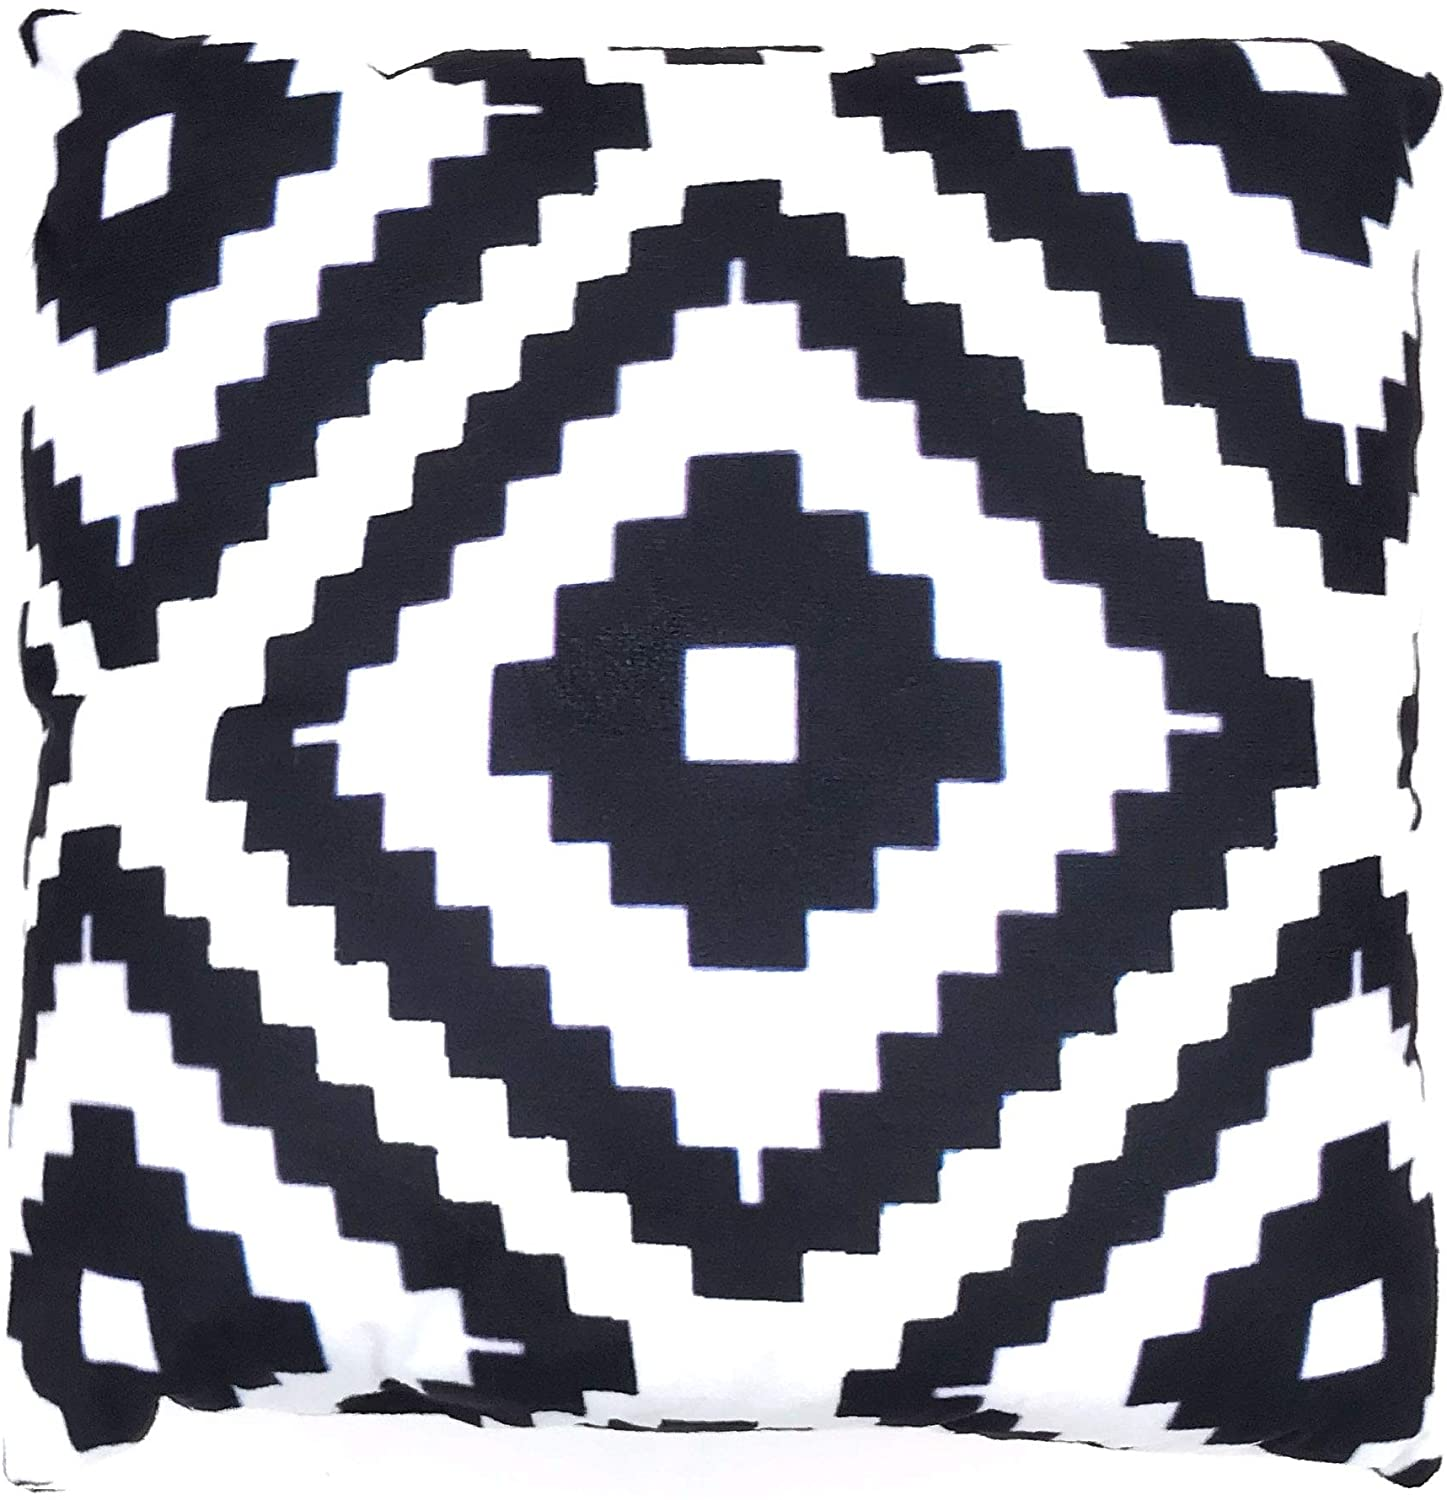 Artsybb Geometric Pattern Pillow Cover - Pure White and Black Short Plush Throw Cushion Covers Home Decorative for Sofa - 18 x 18 Inch - Modern Square Shape in Pure White - Plush Material